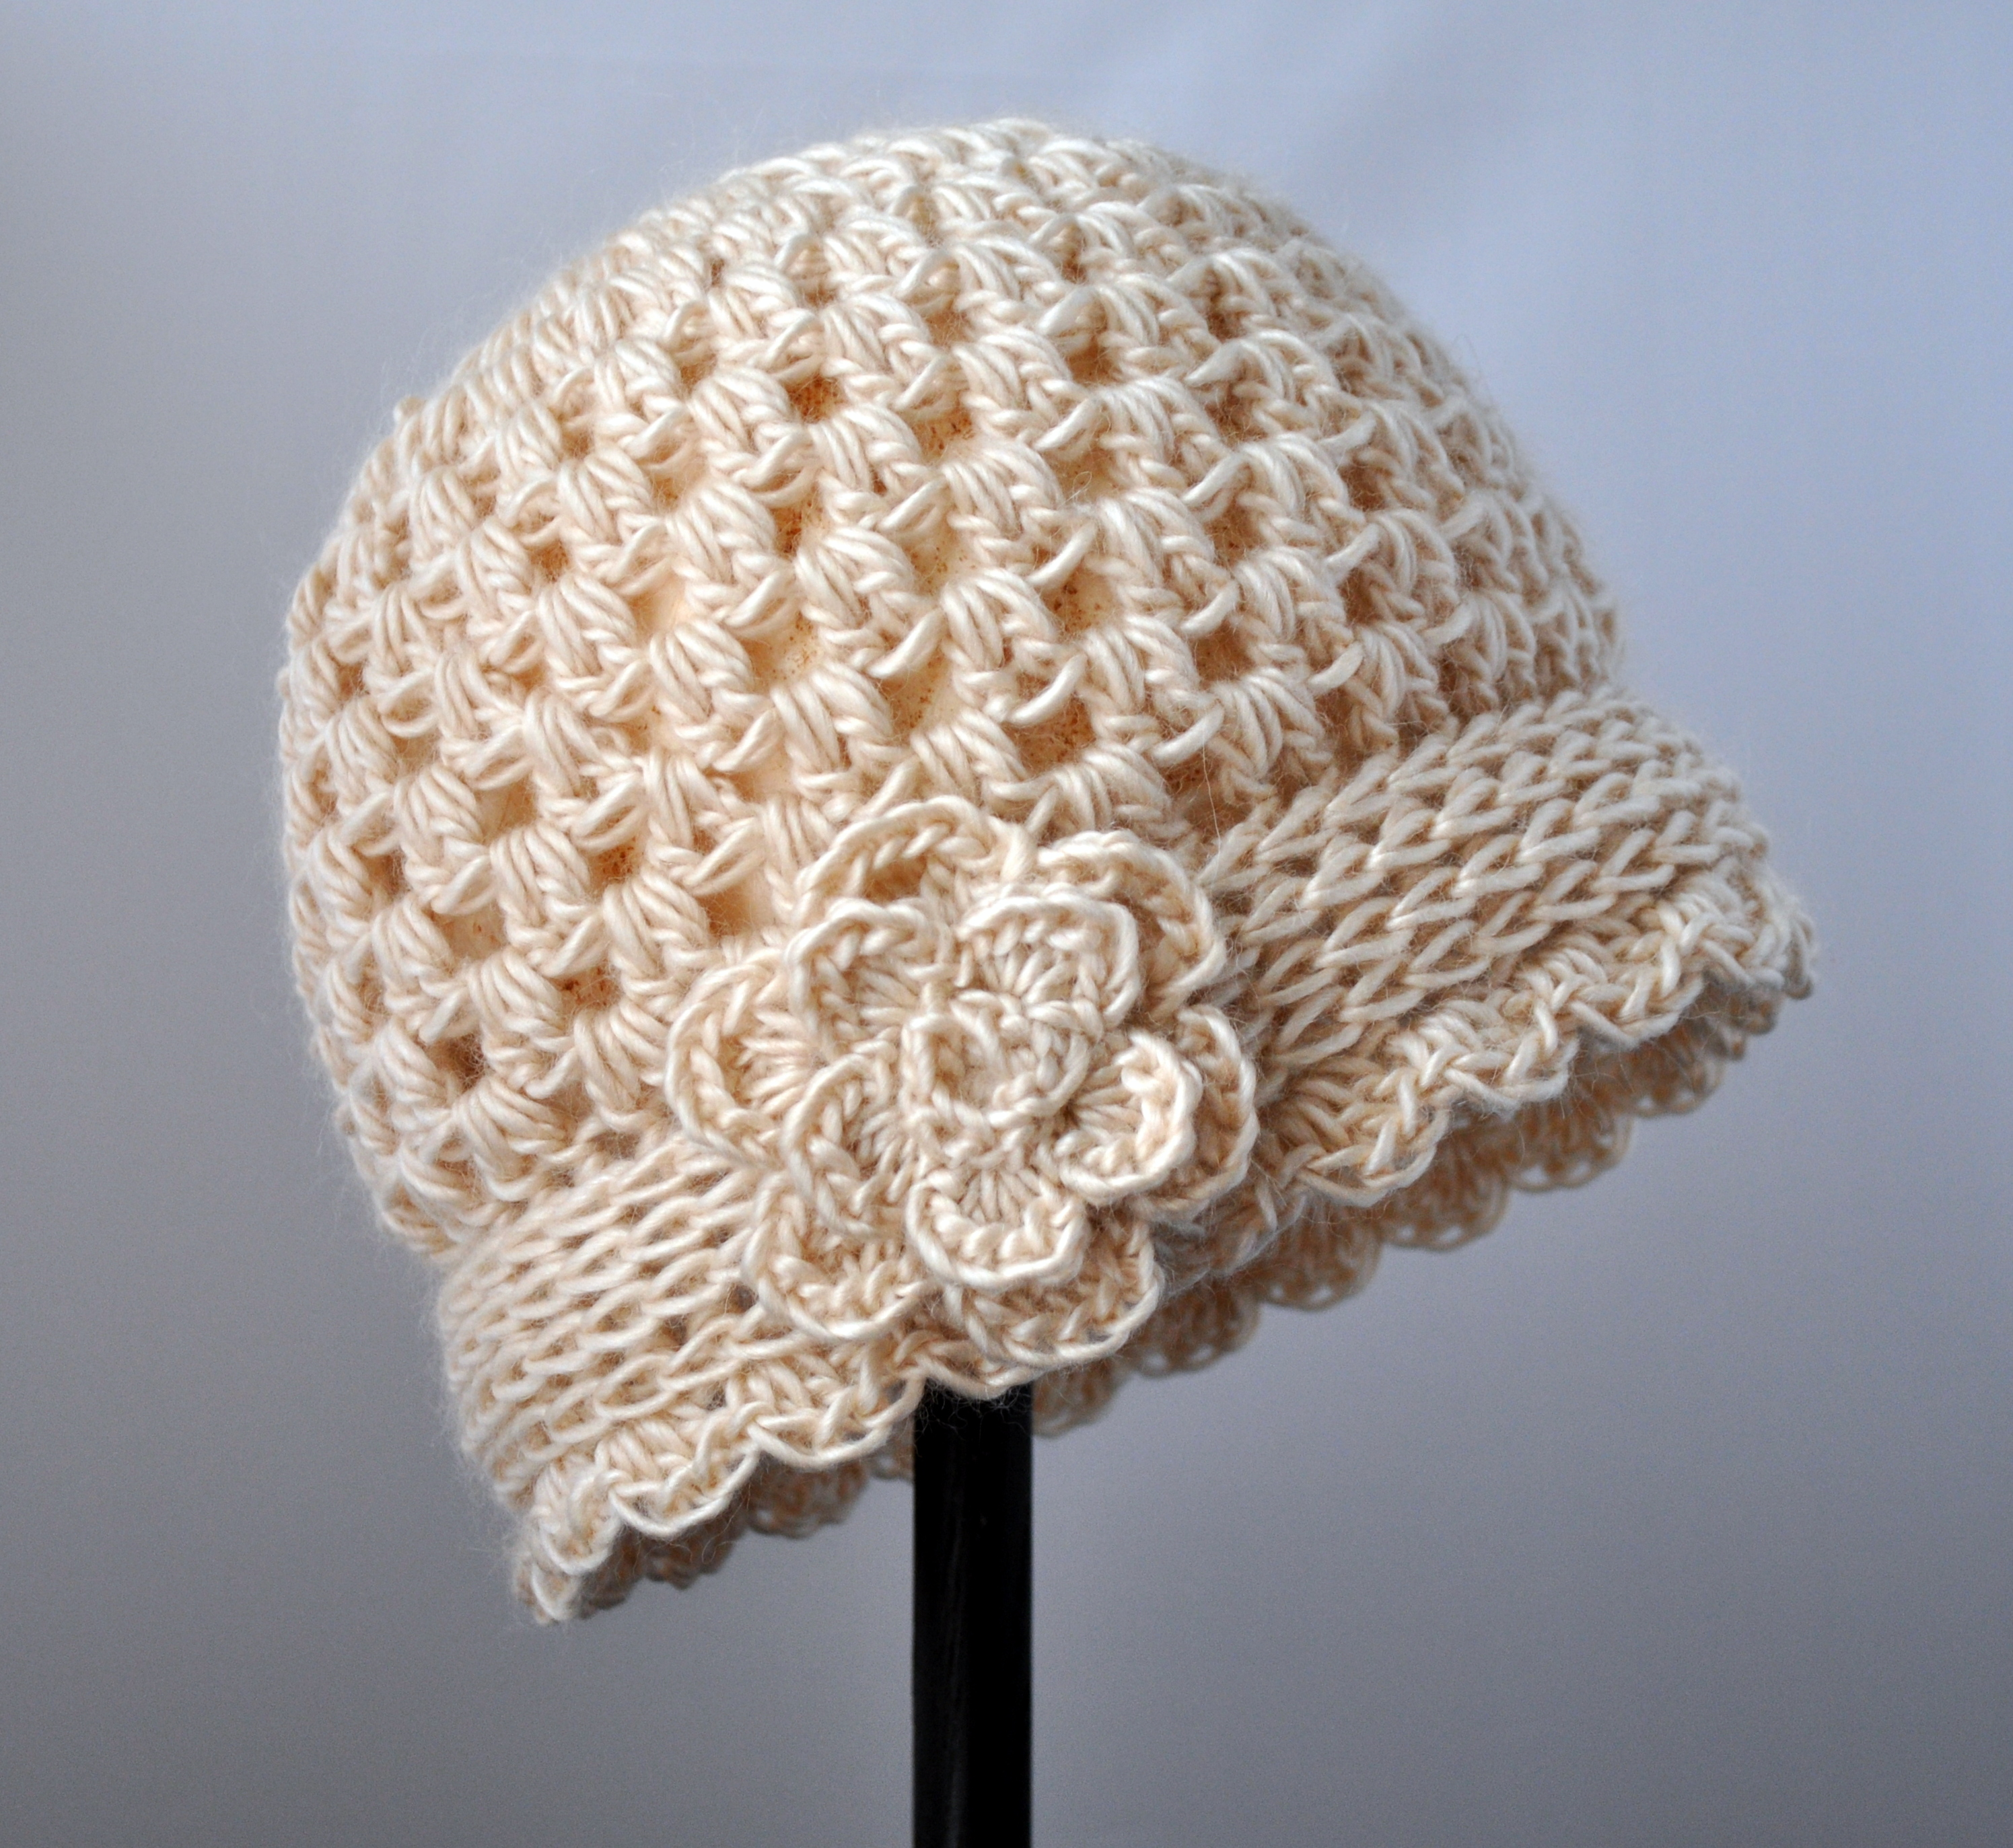 Crochet Vintage Flowered Cloche Pattern Classy Crochet